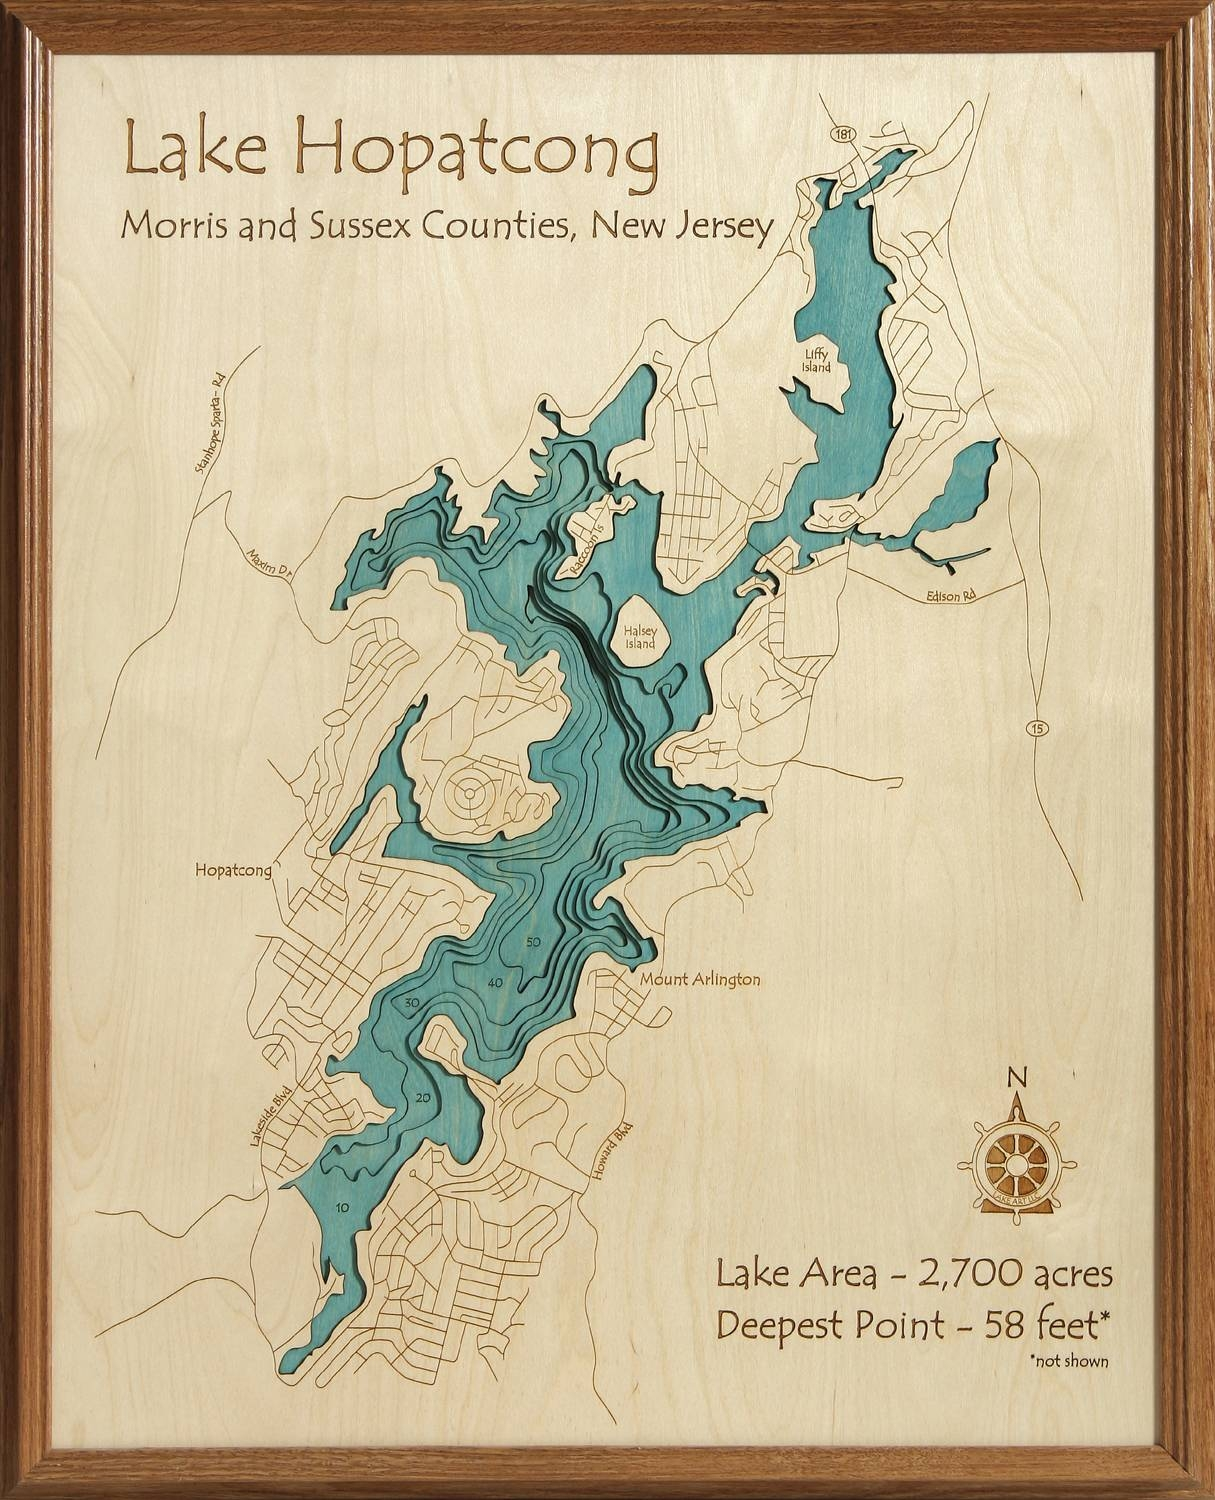 3D Laser Carved Wood Lake Maps | Lakehouse Lifestyle Within Recent Lake Map Wall Art (View 7 of 20)